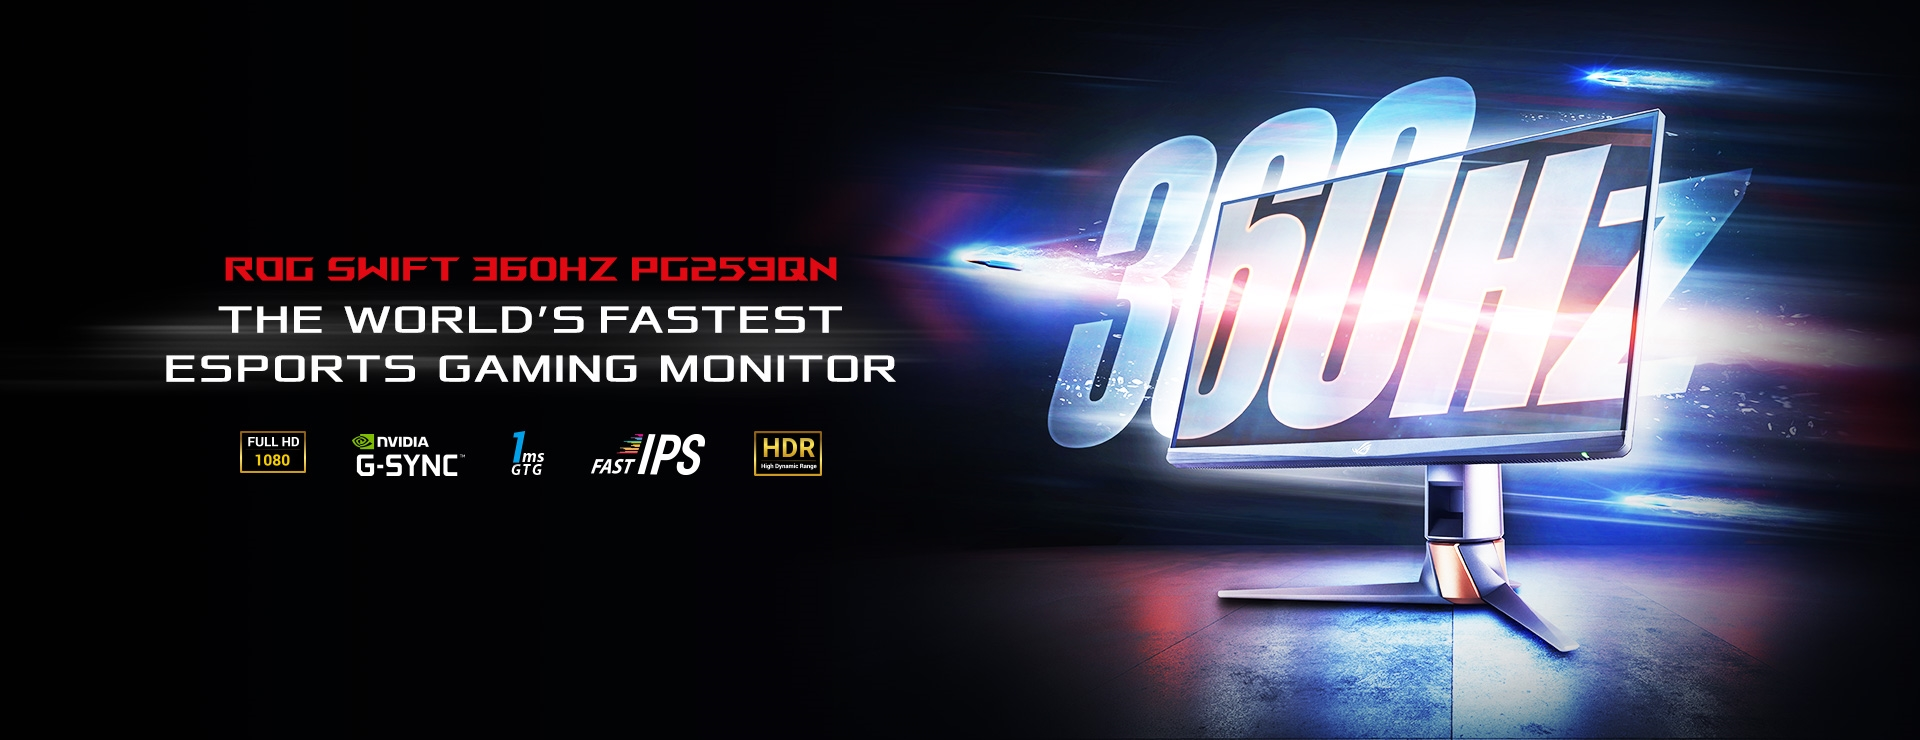 ROG Swift 360 HZ PG259QN